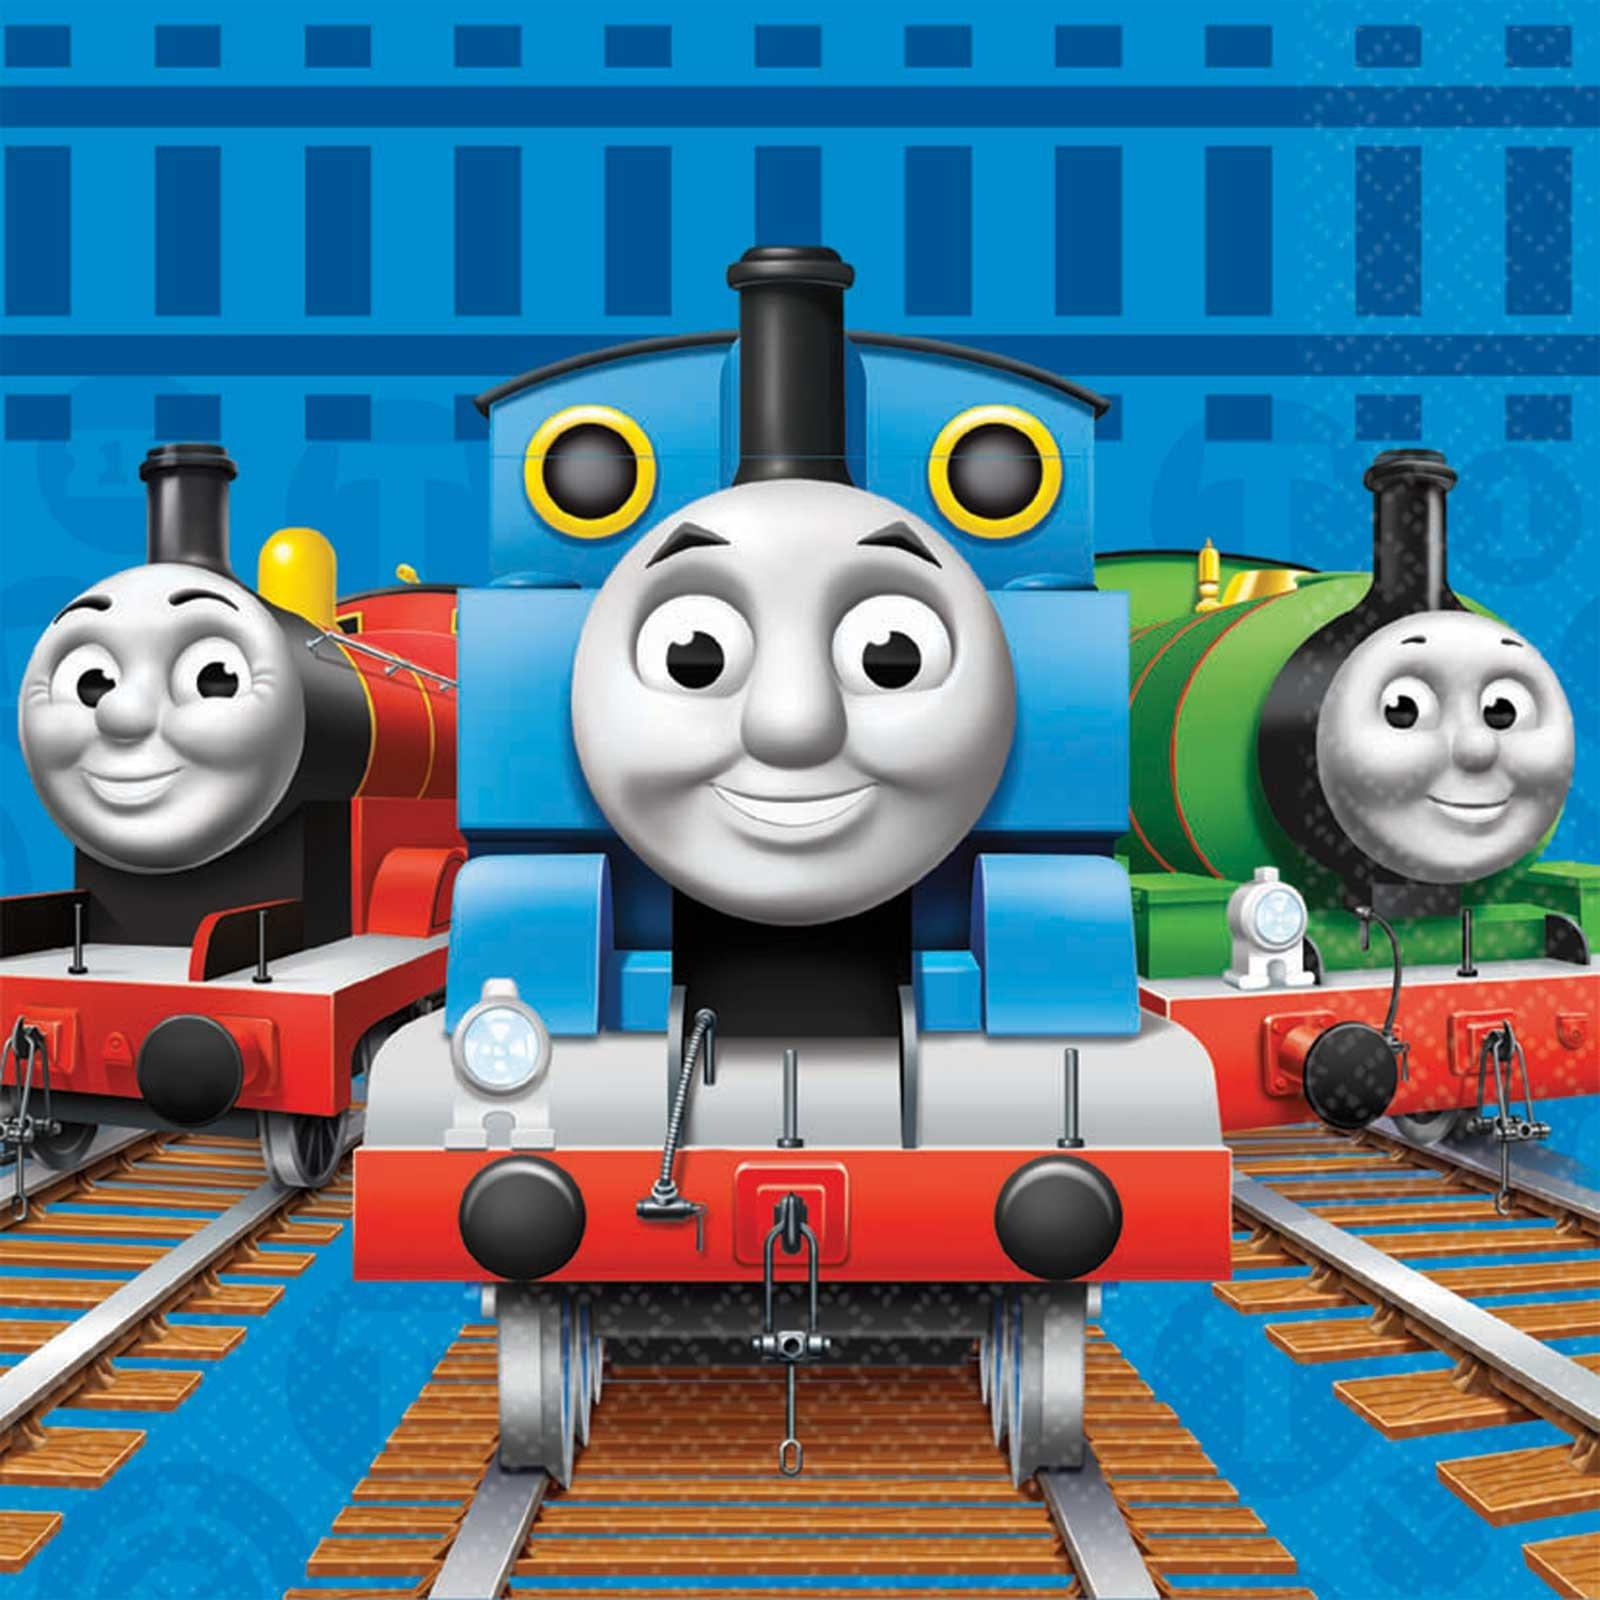 Free Download Thomas The Tank Engine Wallpapers 1600x1600 For